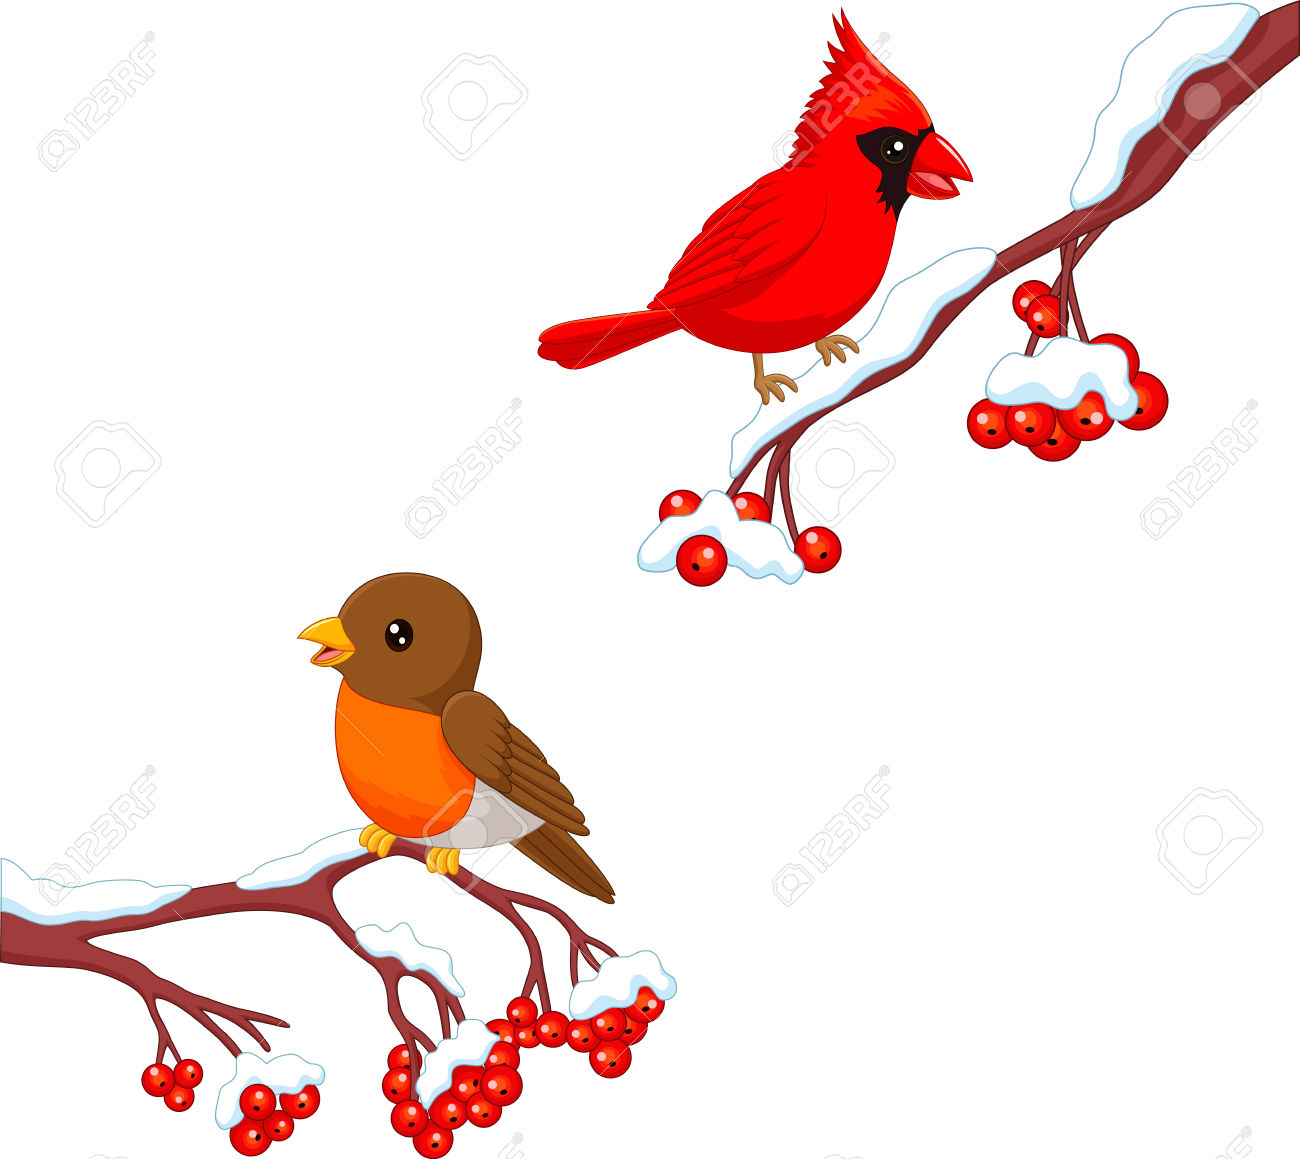 2,807 Robin Stock Vector Illustration And Royalty Free Robin Clipart.